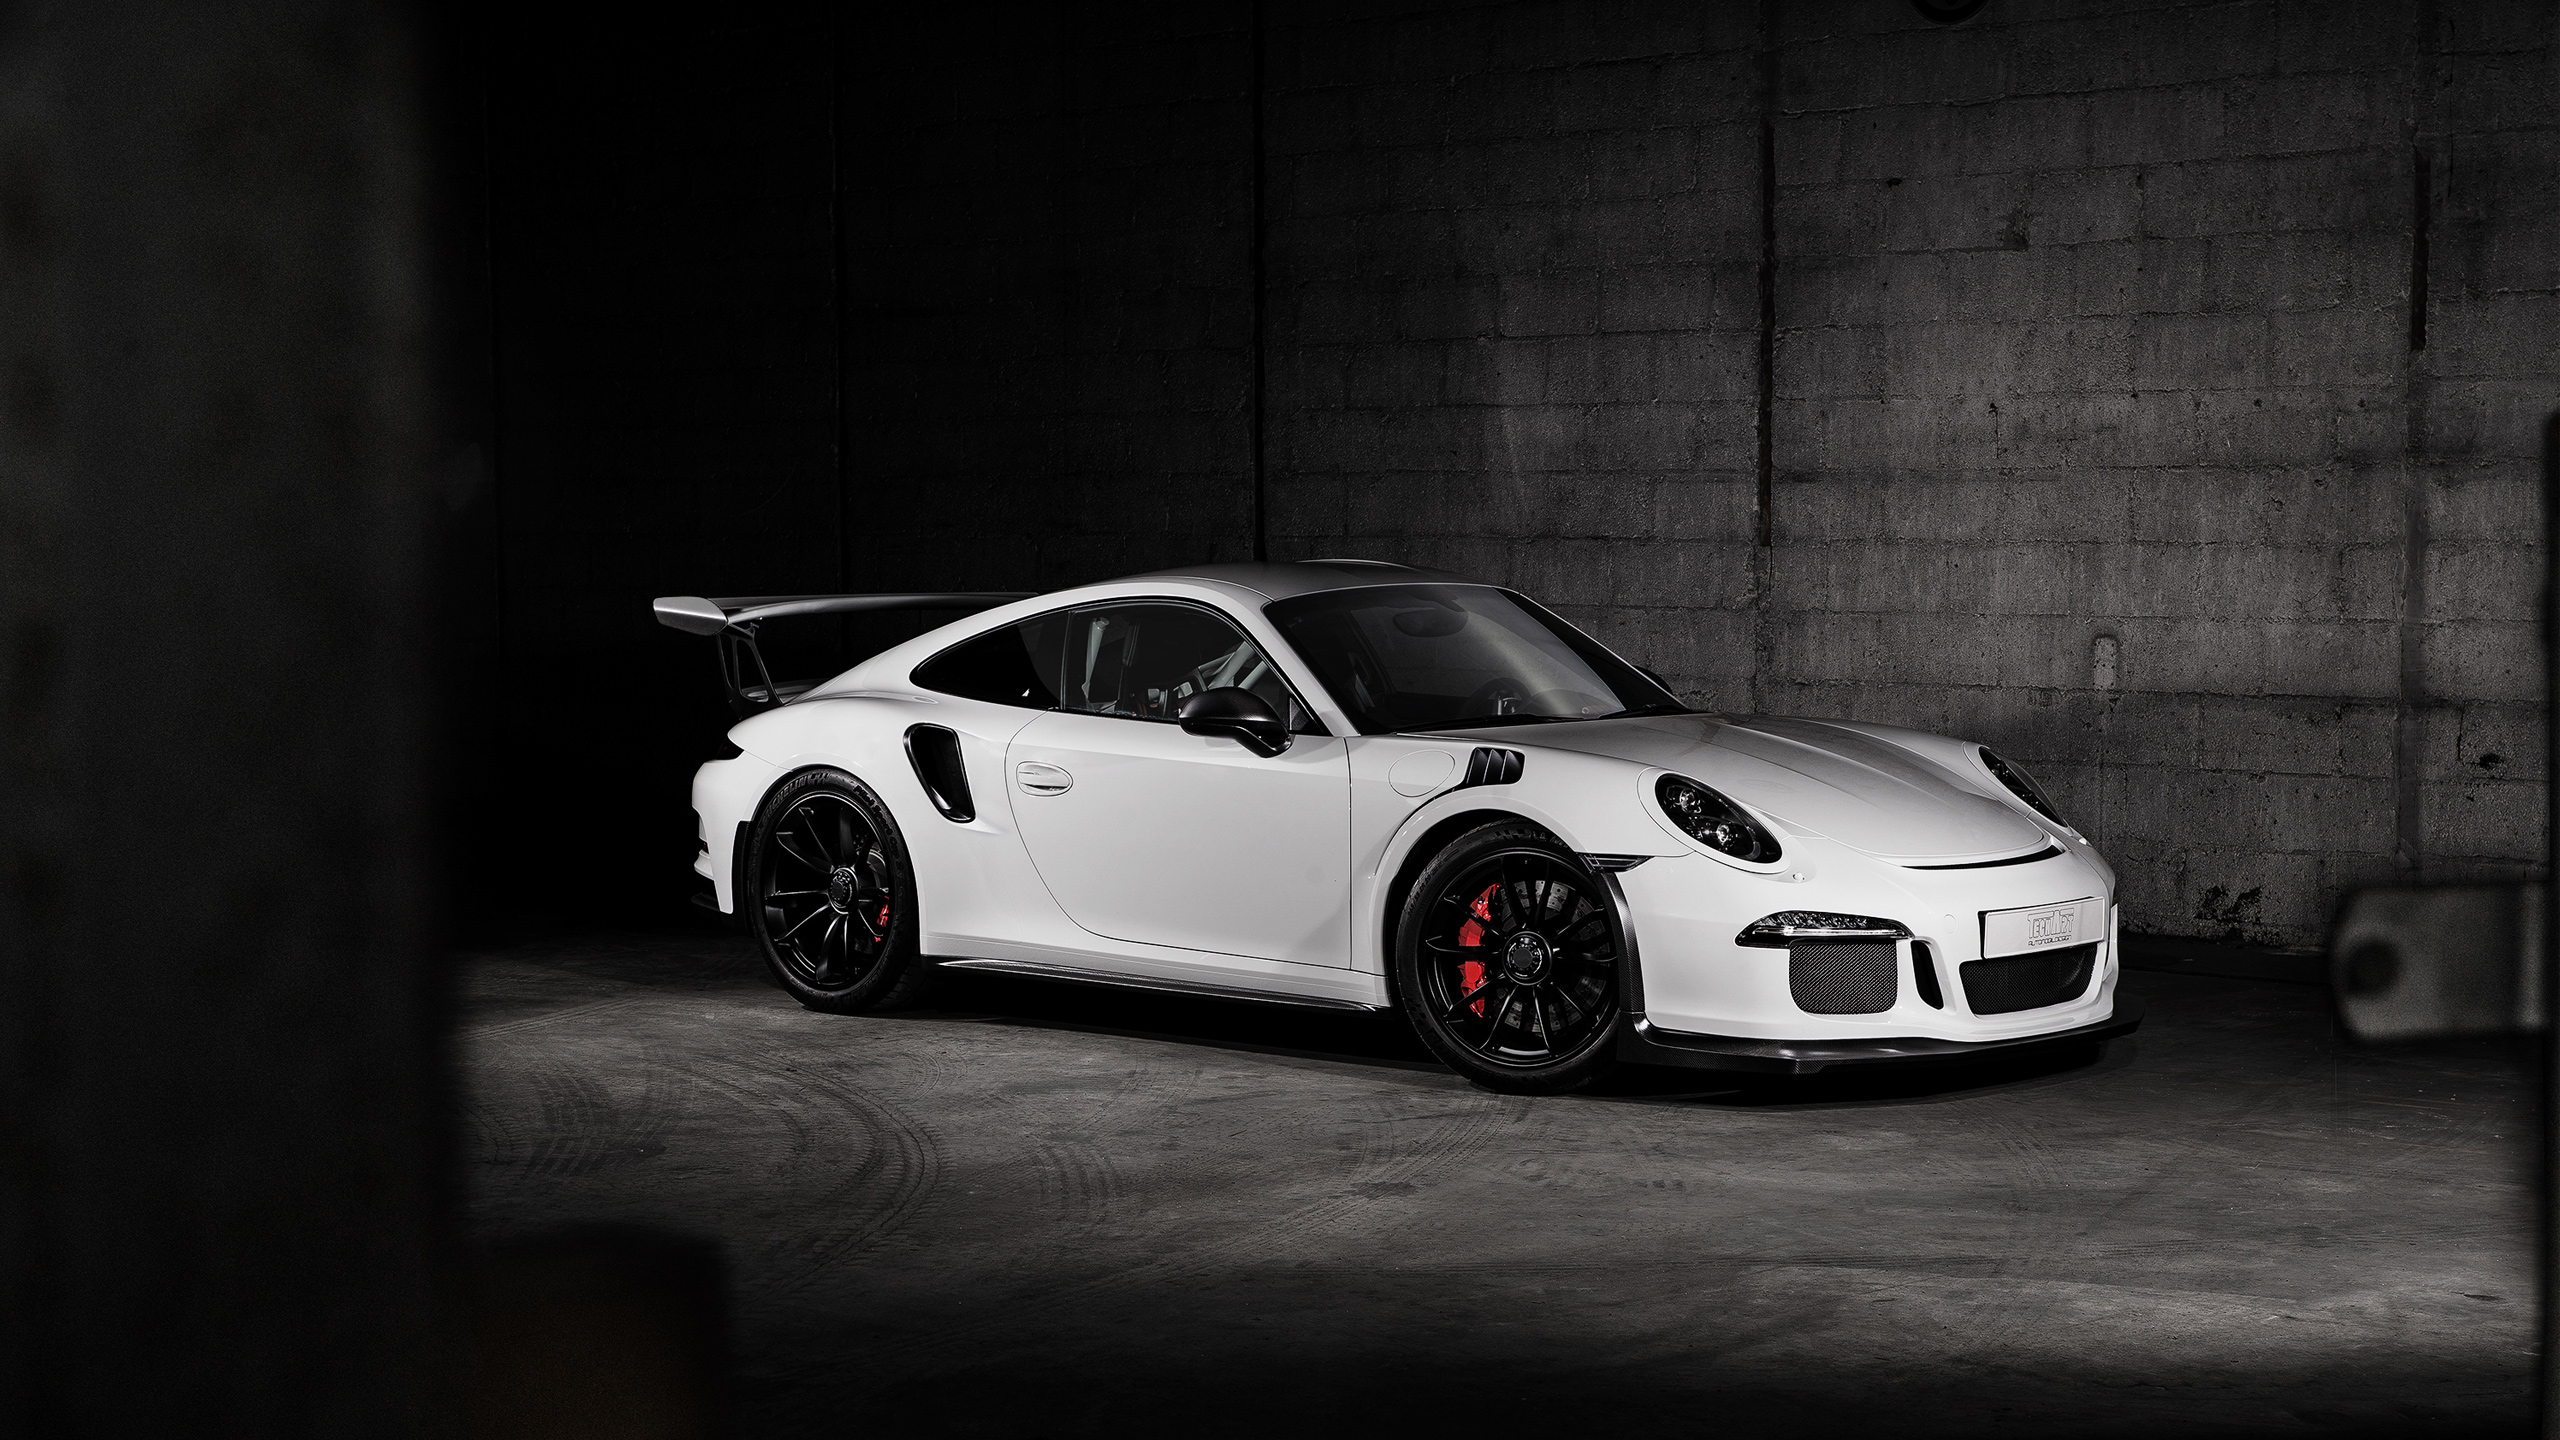 2016 Porsche 911 GT3 RS Carbon TechArt Wallpaper | HD Car ...